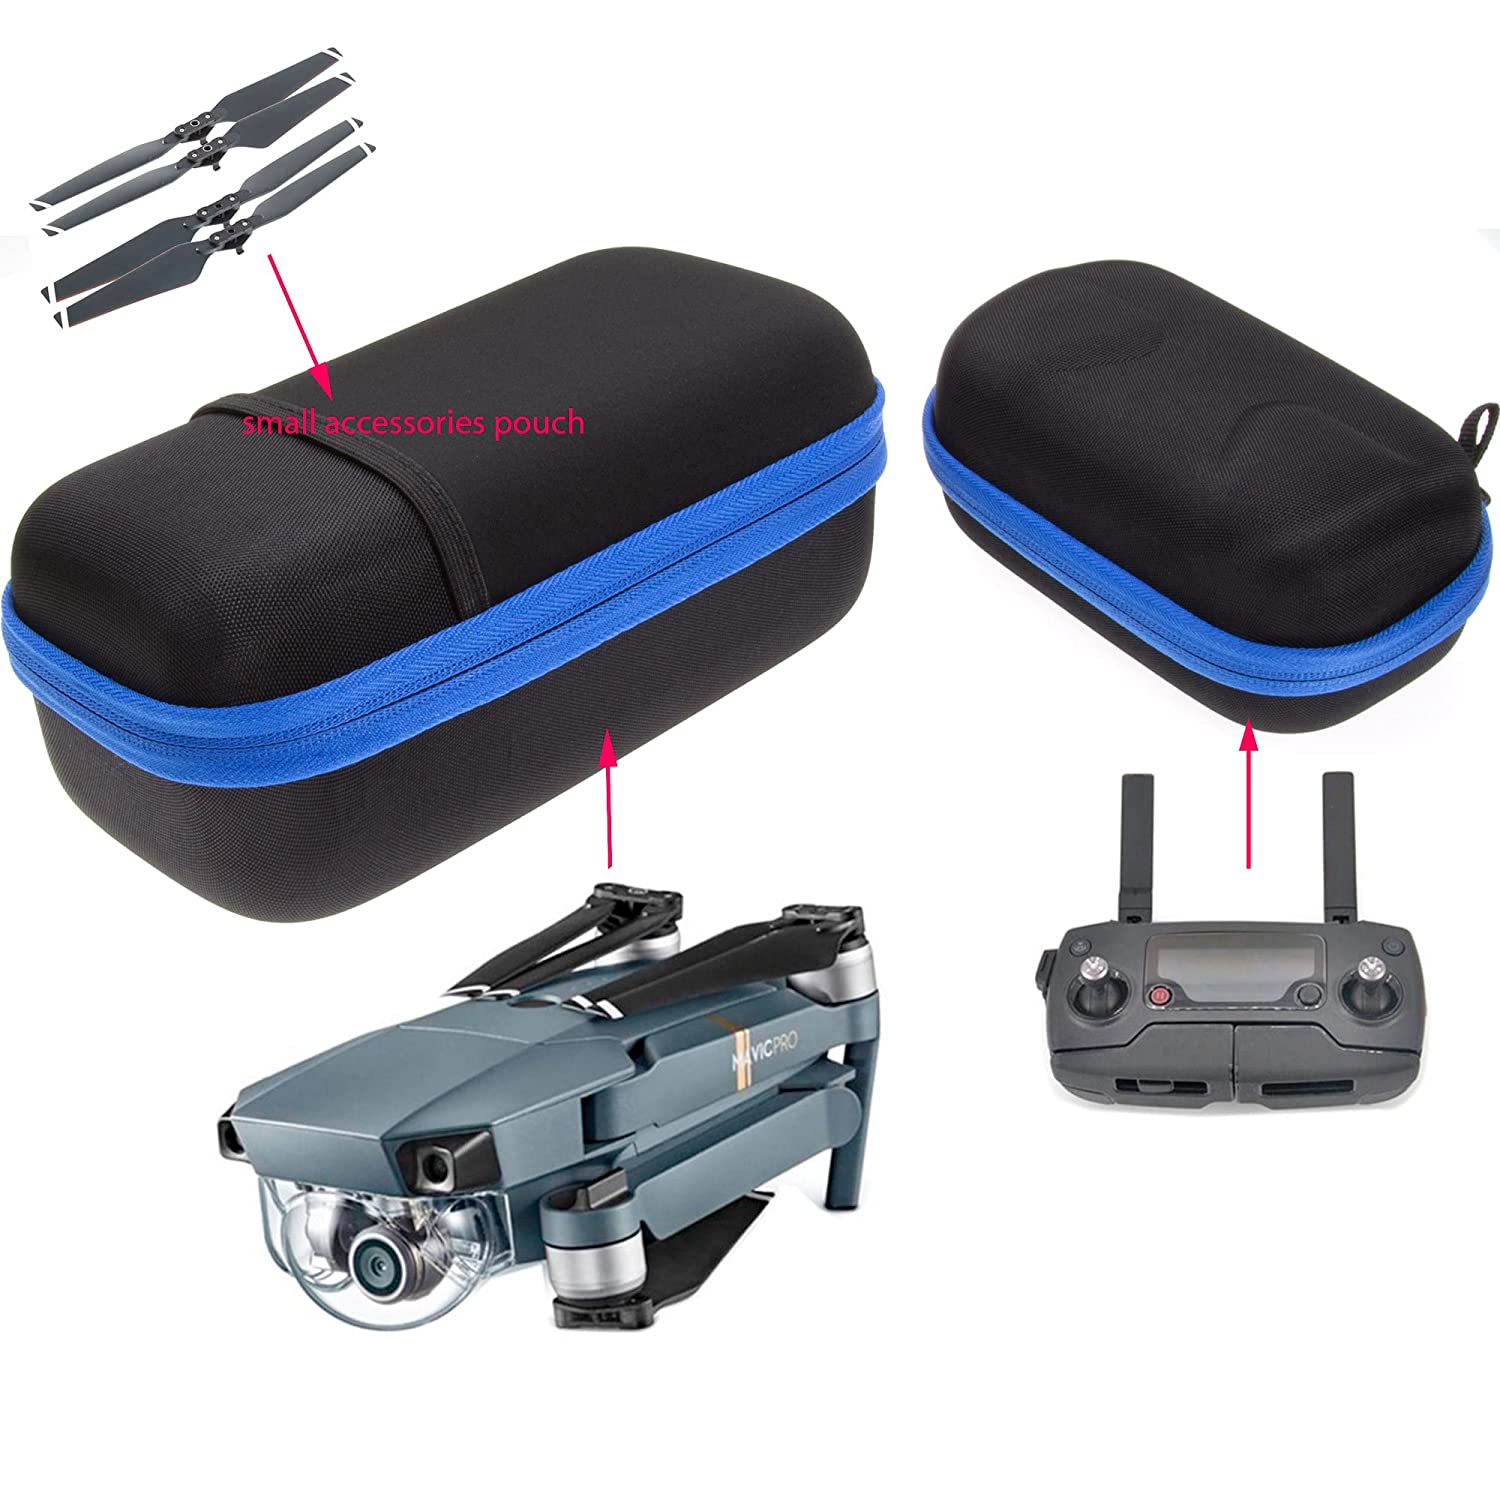 ButterFox Carrying Case Set for DJI Mavic Pro Drone Remote Controller and Small Accessories No Horrible Smell